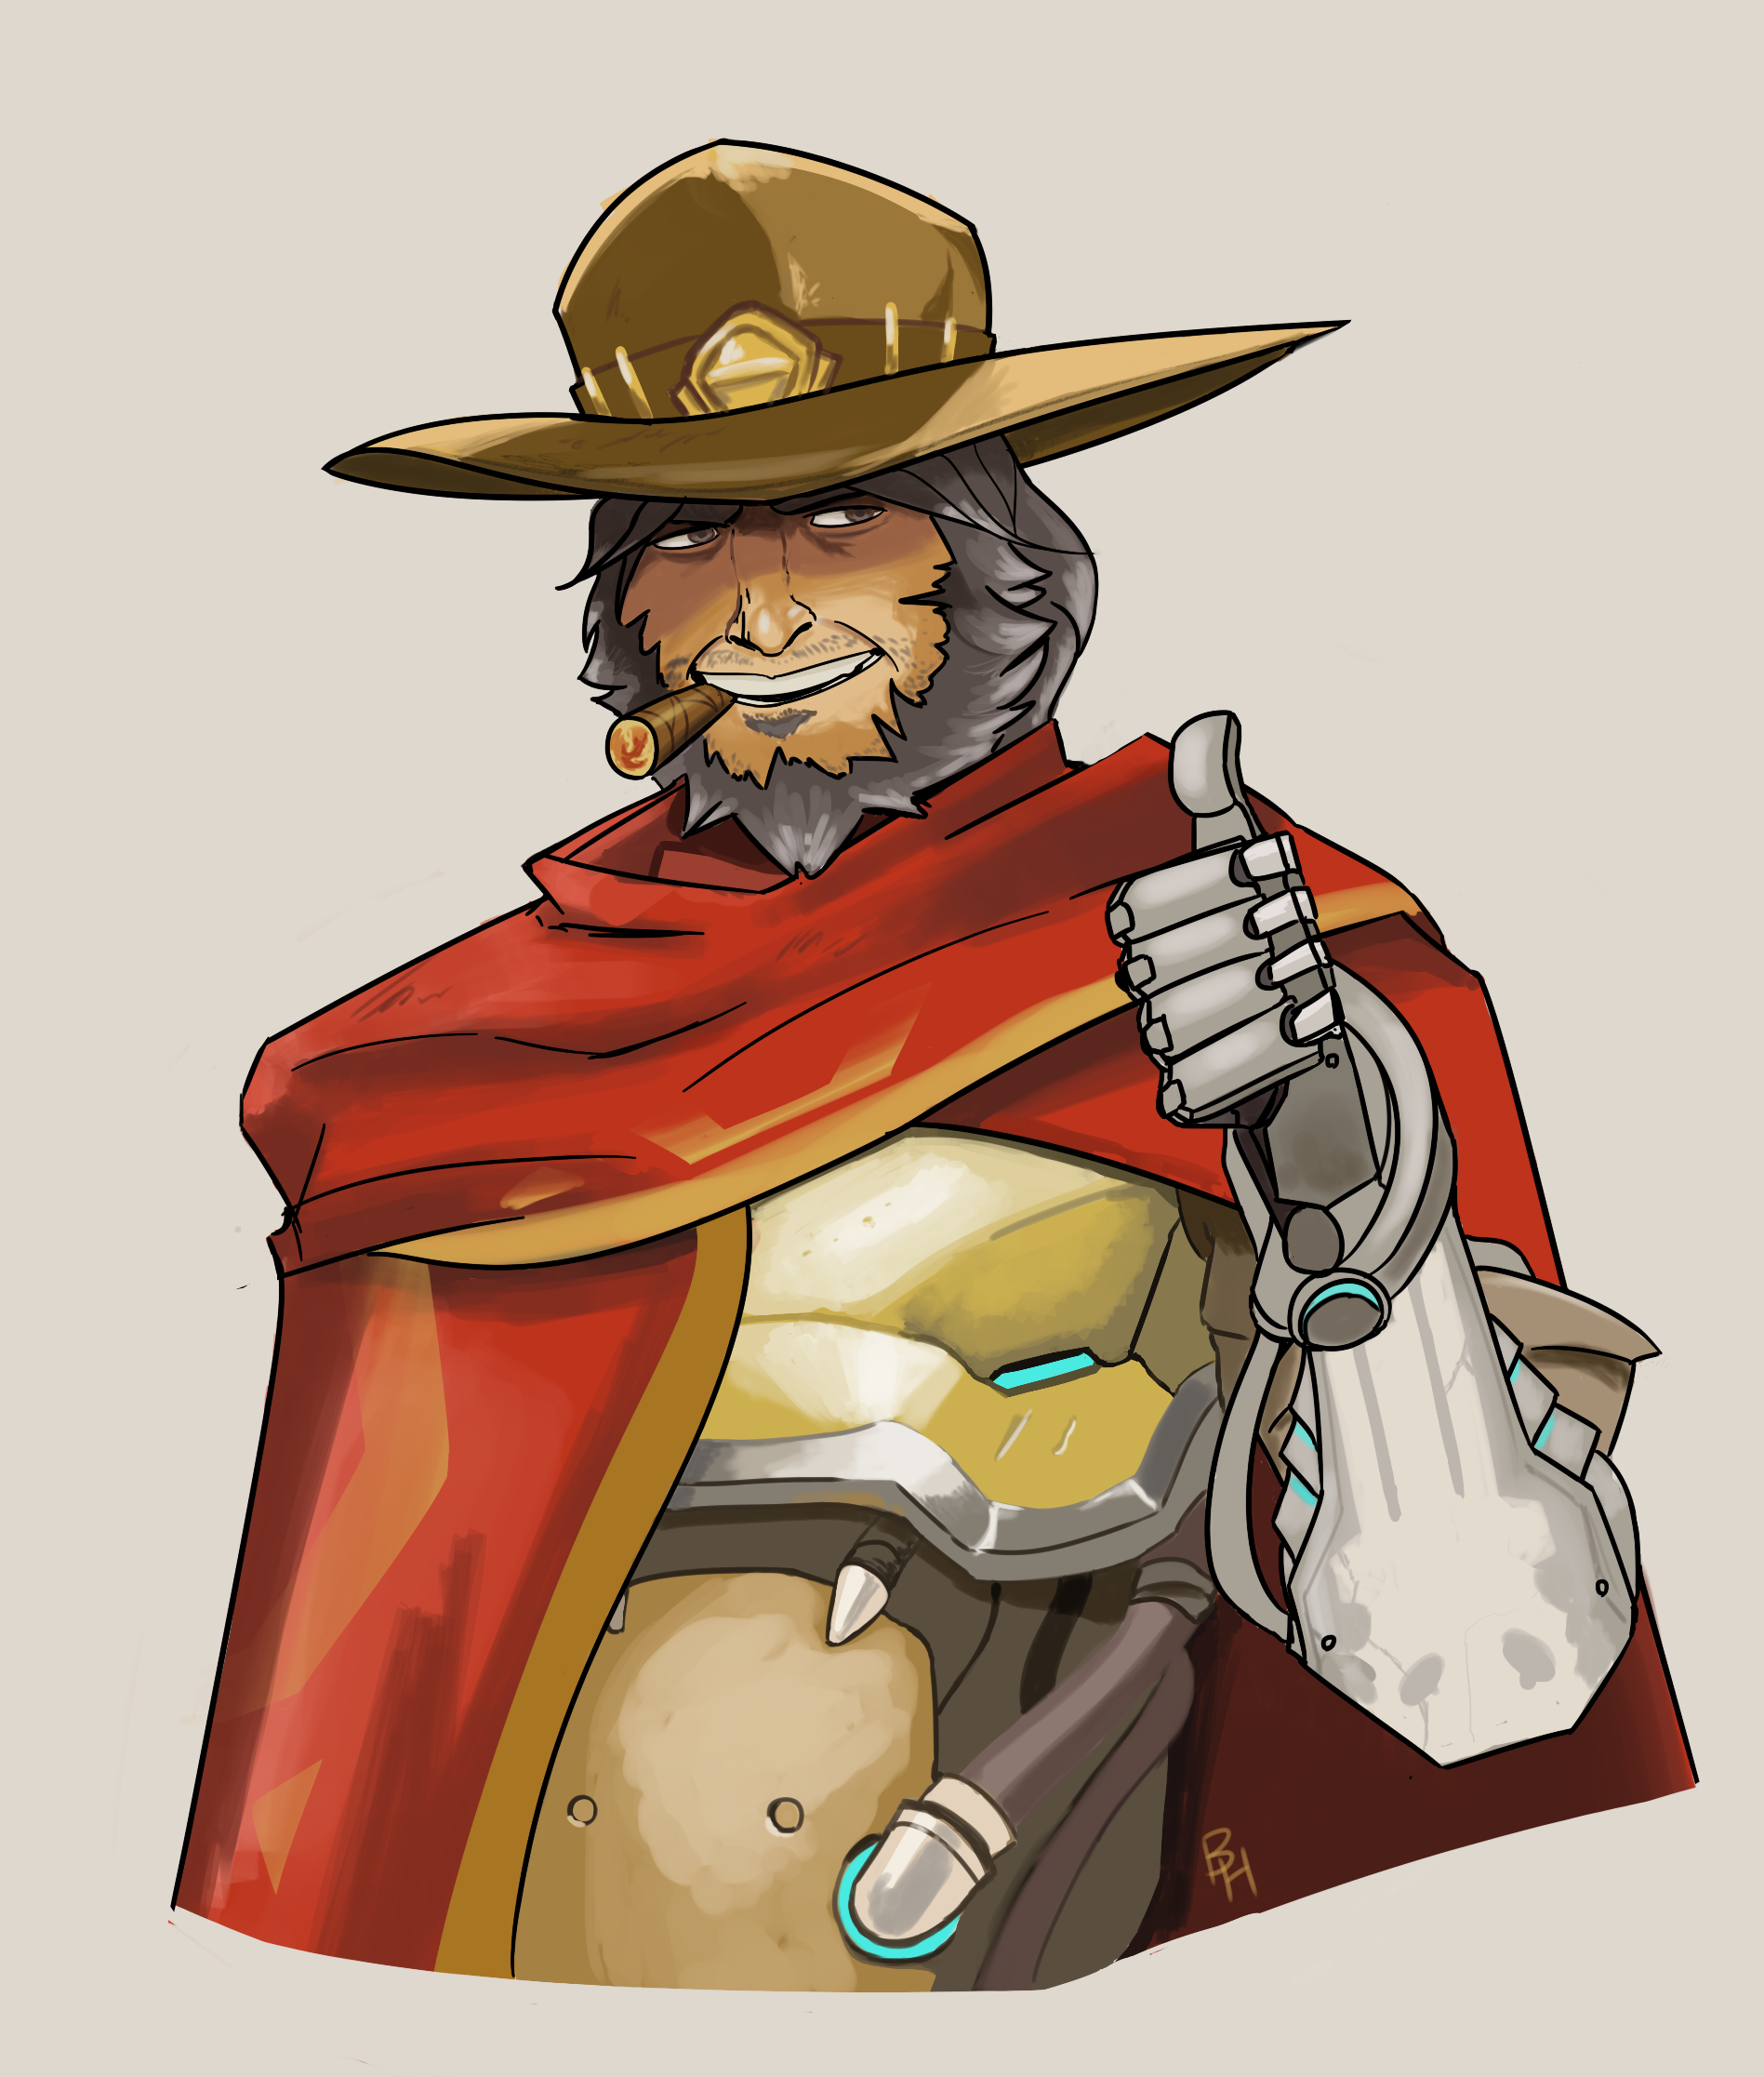 Overwatch mccree clipart vector transparent library Mccree clipart - ClipartFest vector transparent library